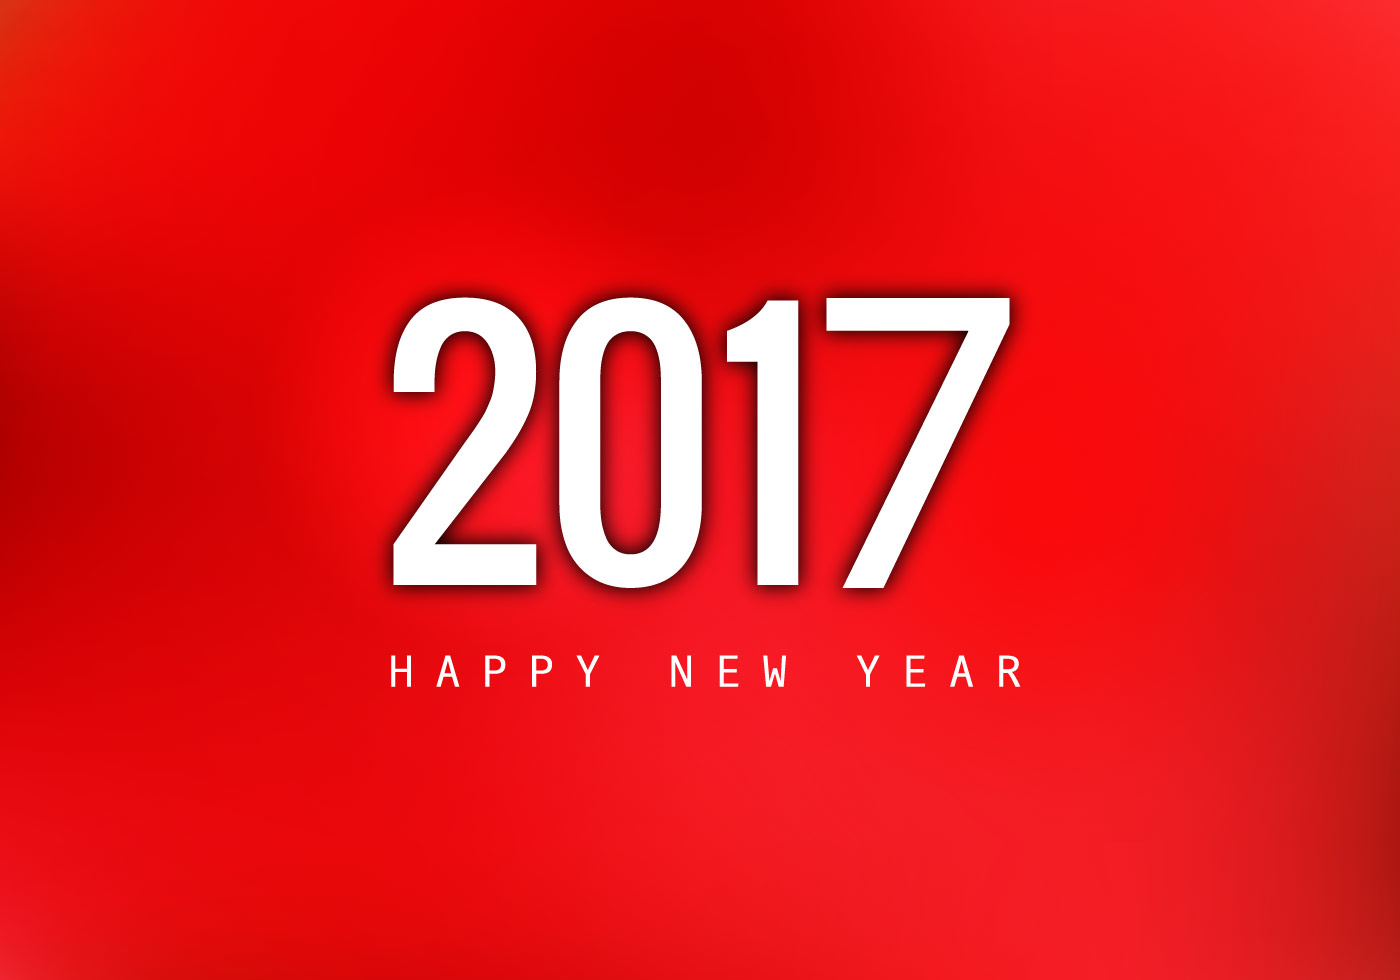 Happy New Year 2017 On Red Background Download Free Vector Art